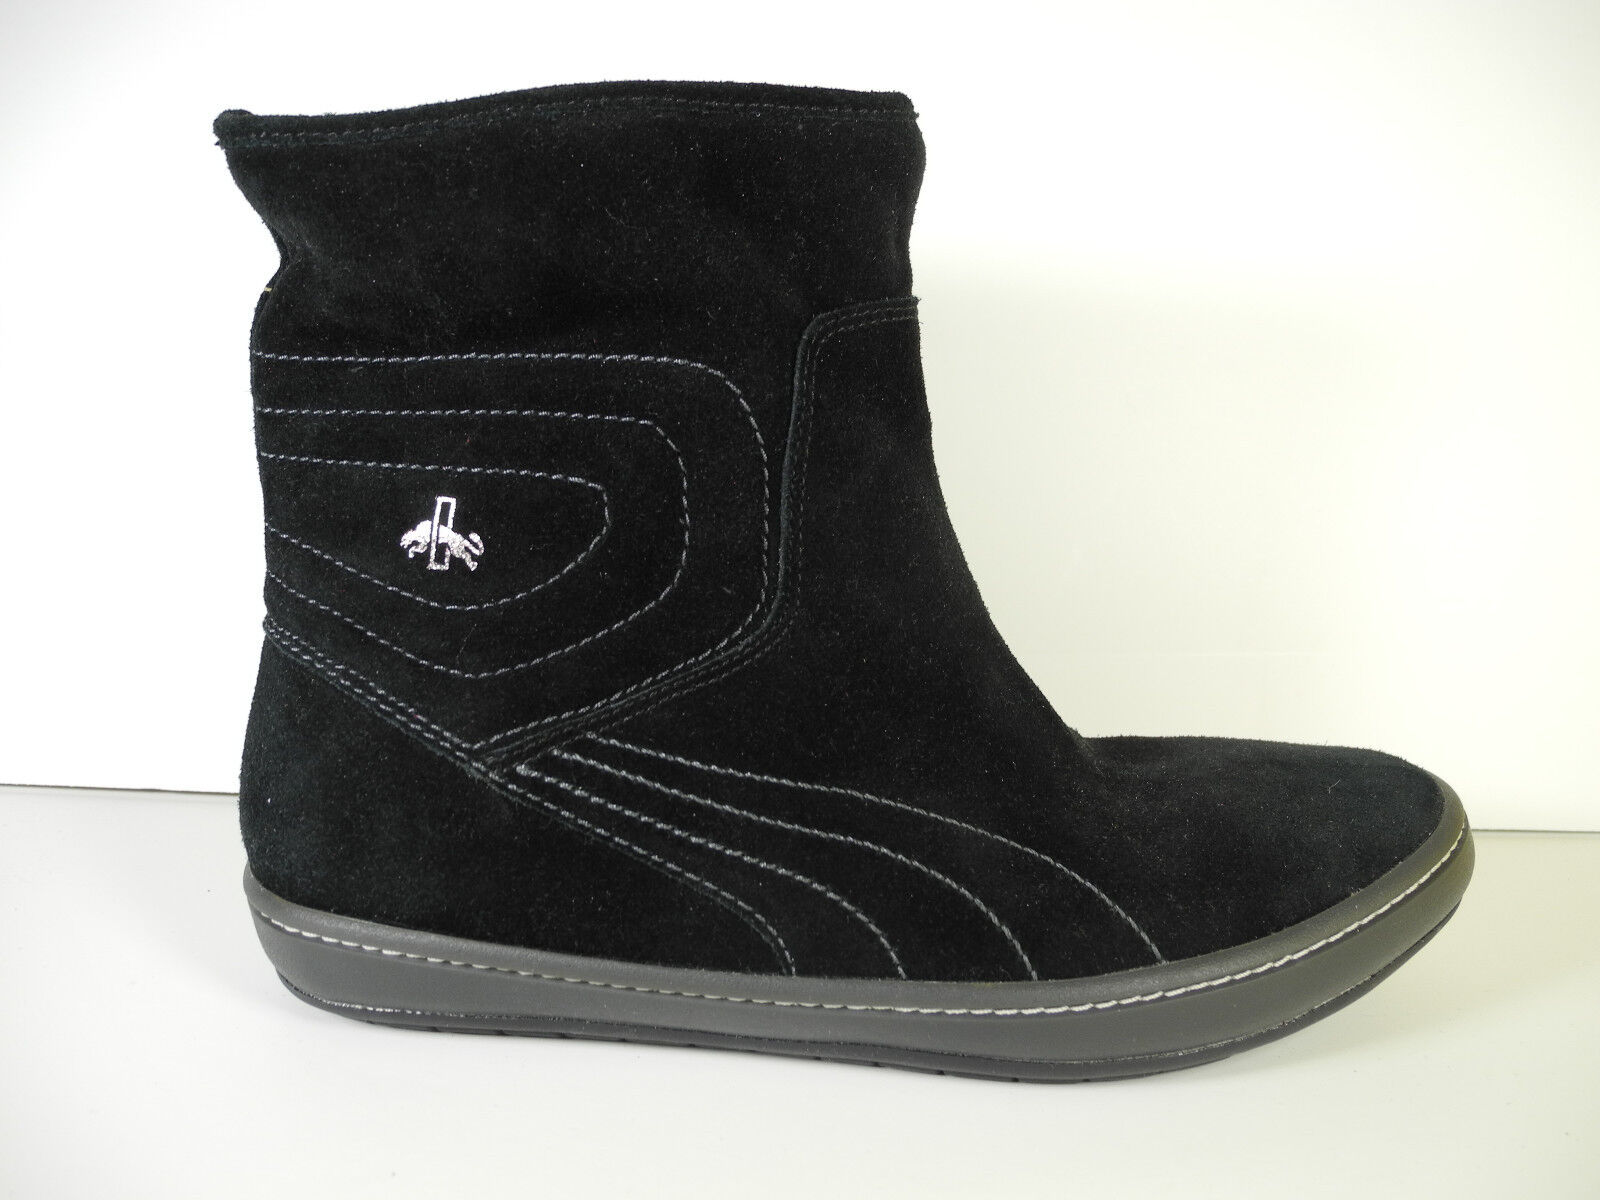 NEW Puma MOJAVE SUEDE WTR Women's Boots Size 7.5